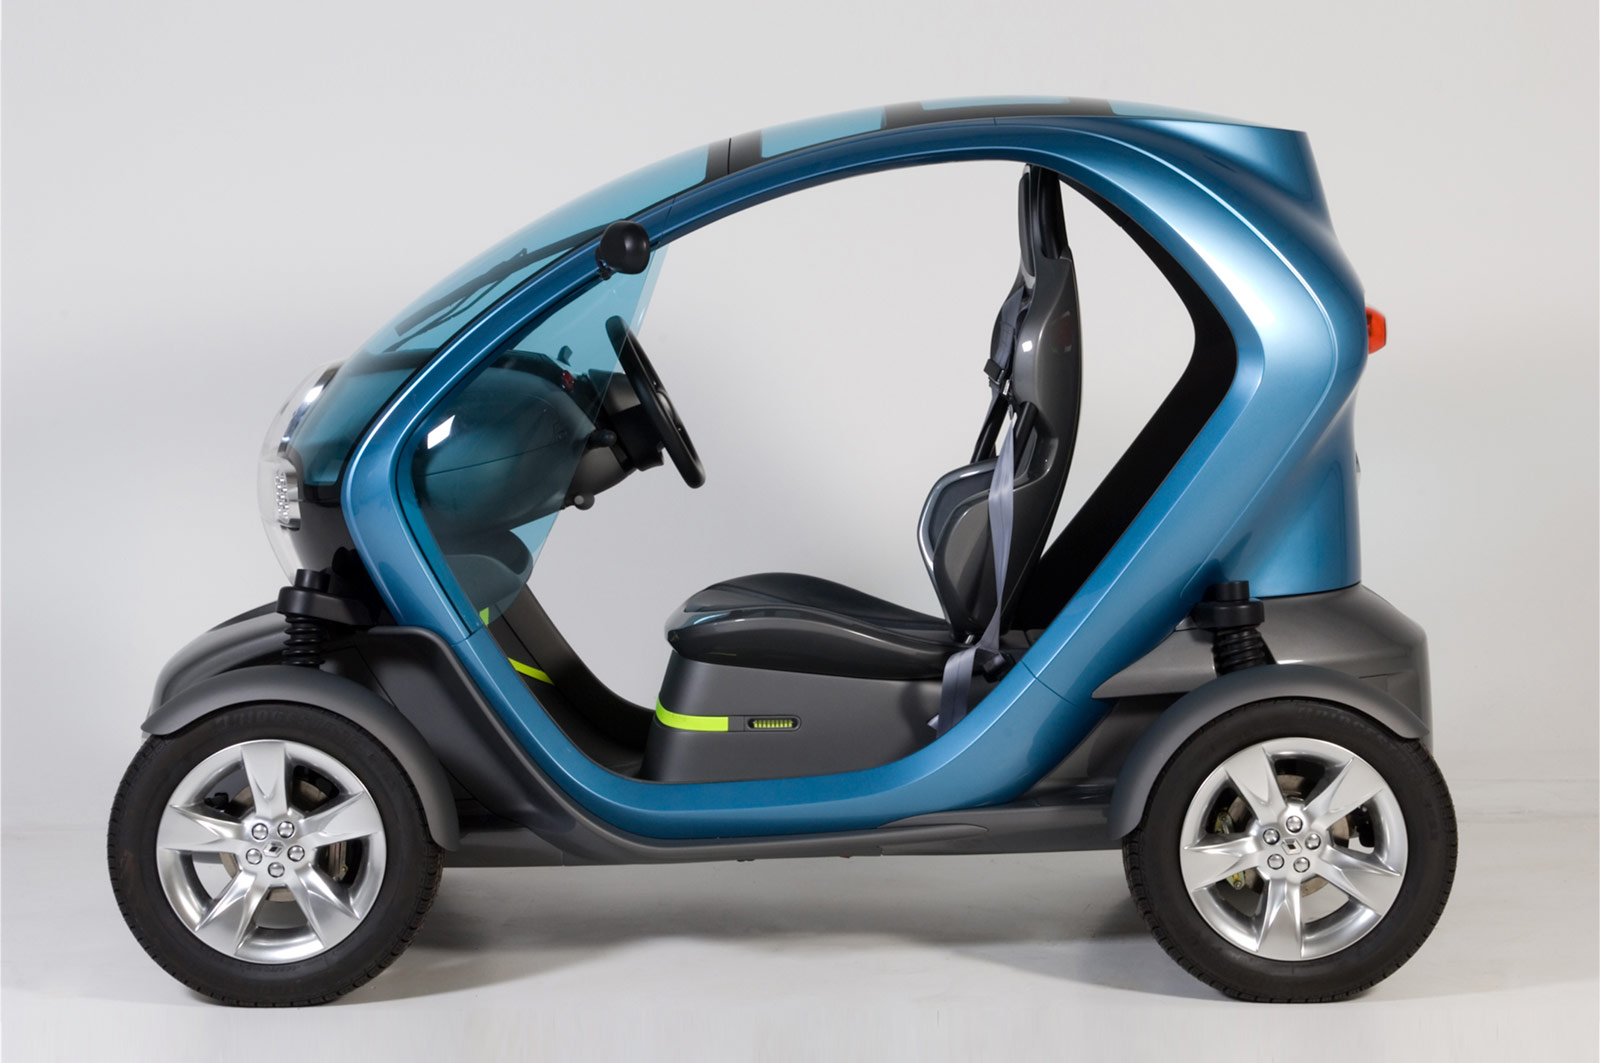 renault twizy final prototype car body design. Black Bedroom Furniture Sets. Home Design Ideas